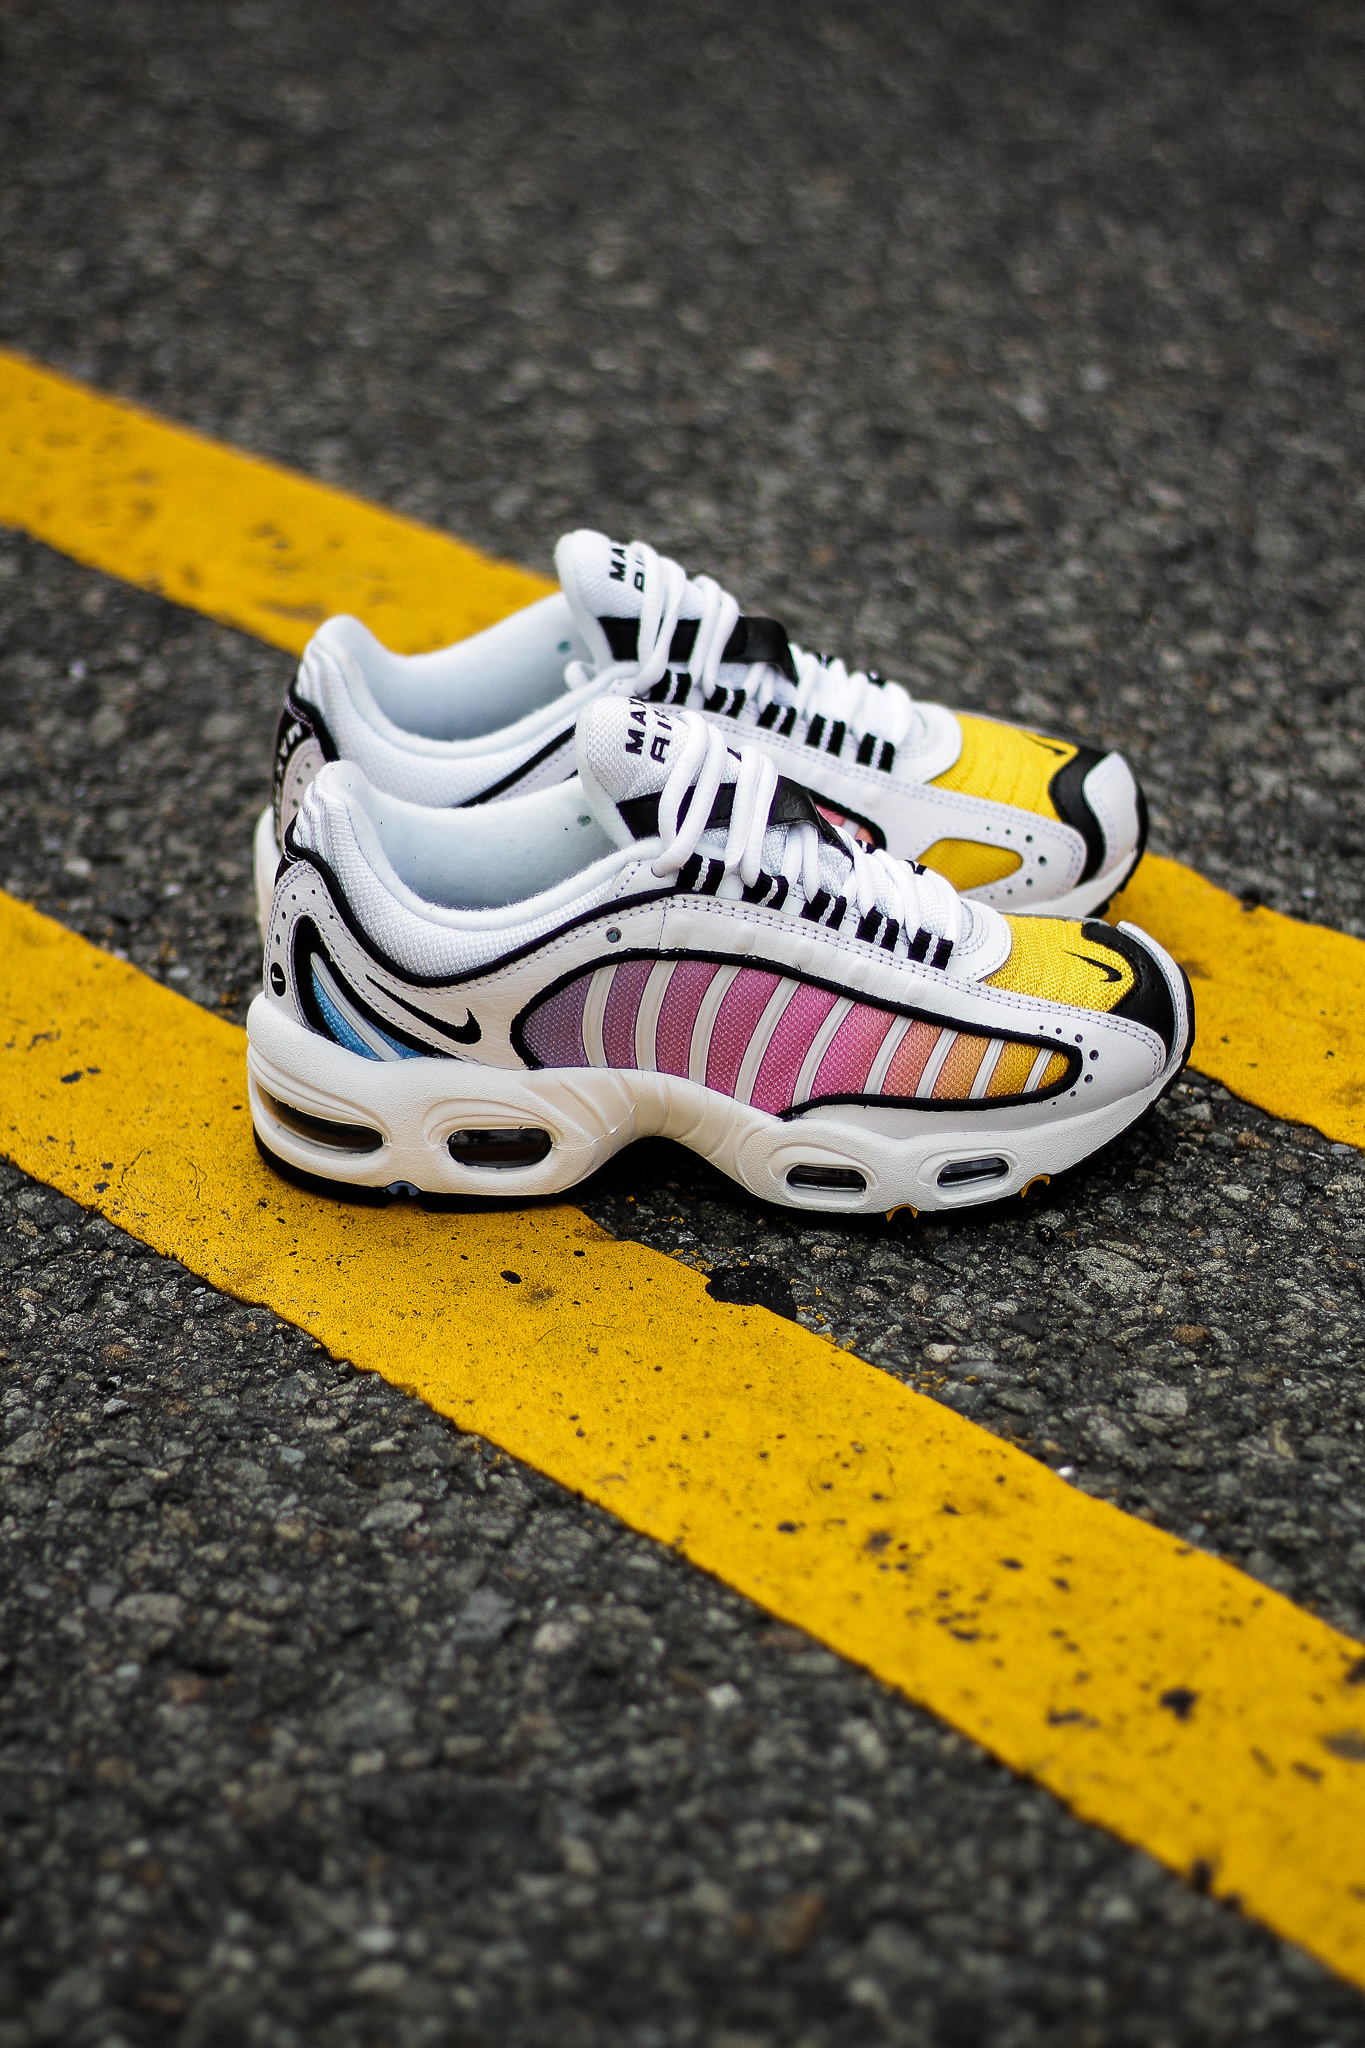 Air Max Tailwind IV bright yellow